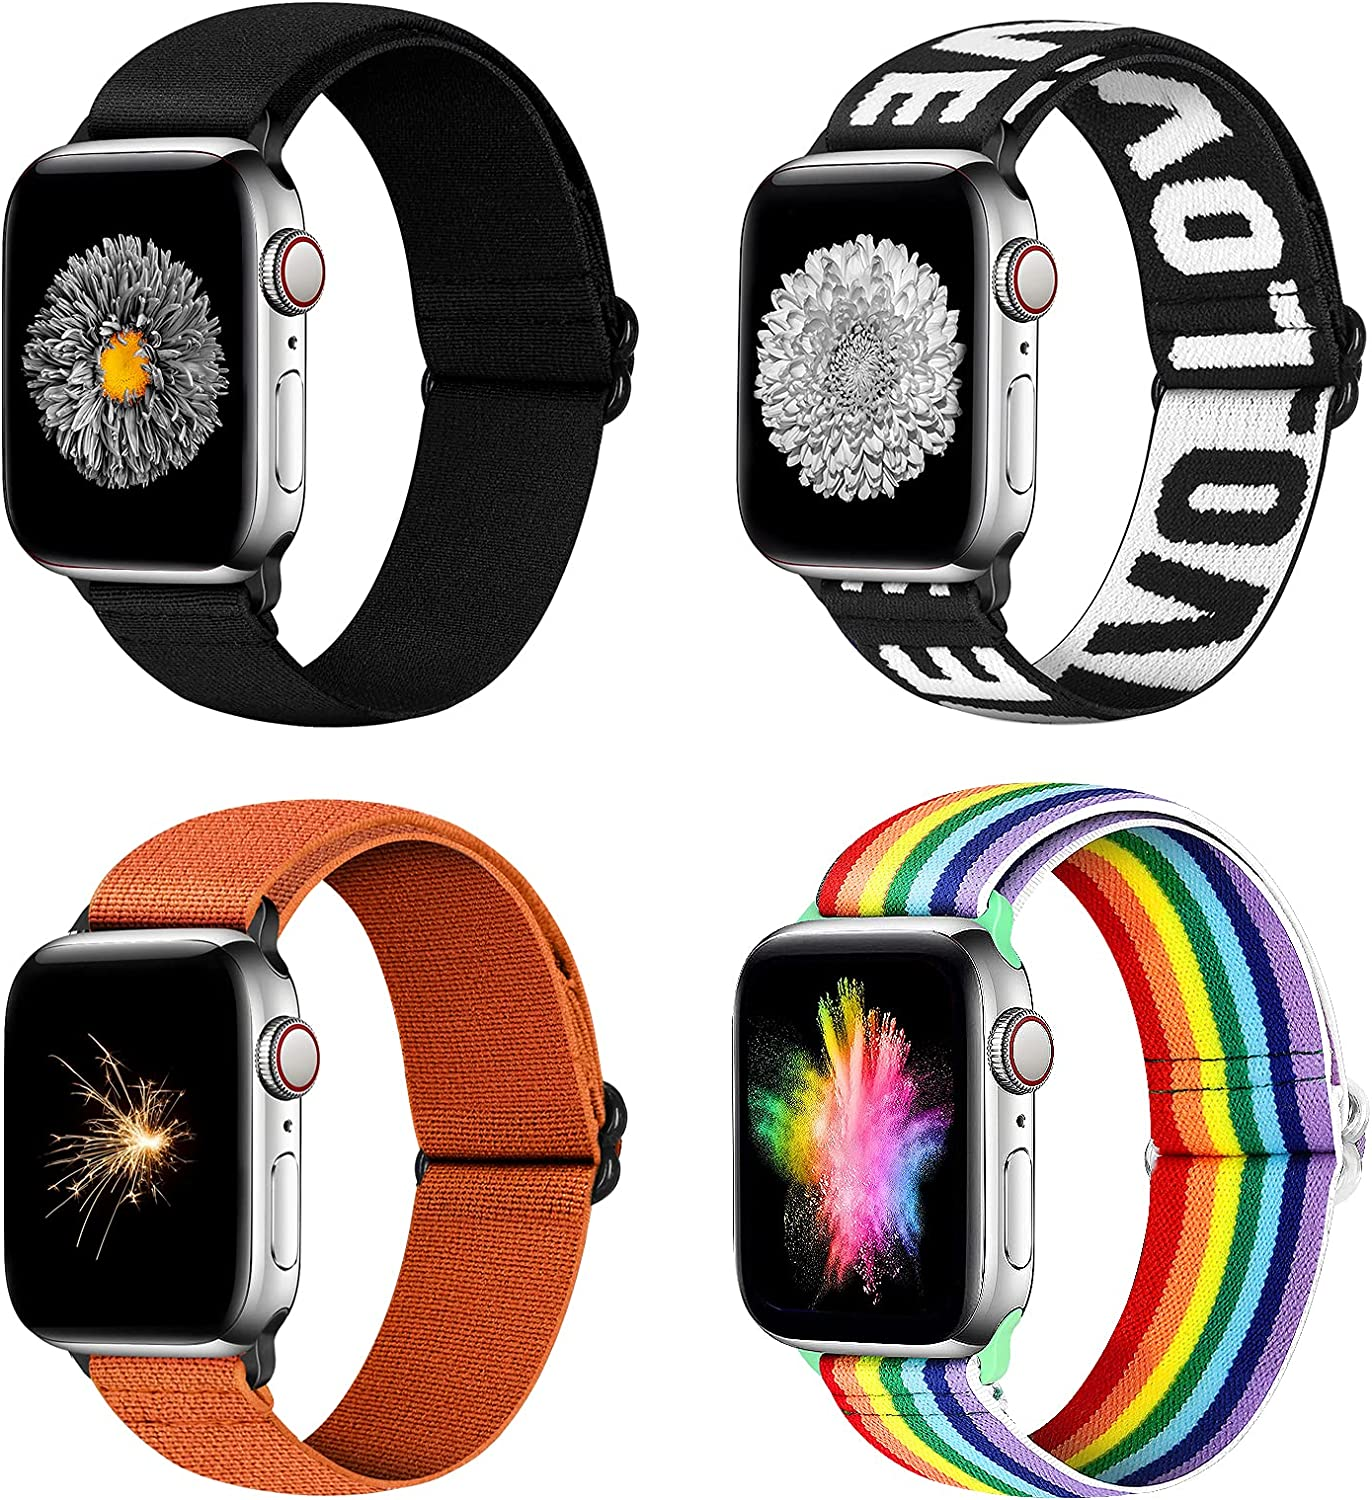 YCHDDER Nylon Elastic Watch Band Compatible with Apple Watch 42mm 44mm, Adjustable Sport Solo Loop Wristband Strap Compatible with iWatch Series 6/5/4/3/2 / 1SE(Black+Rainbow+LOVE+Orange)